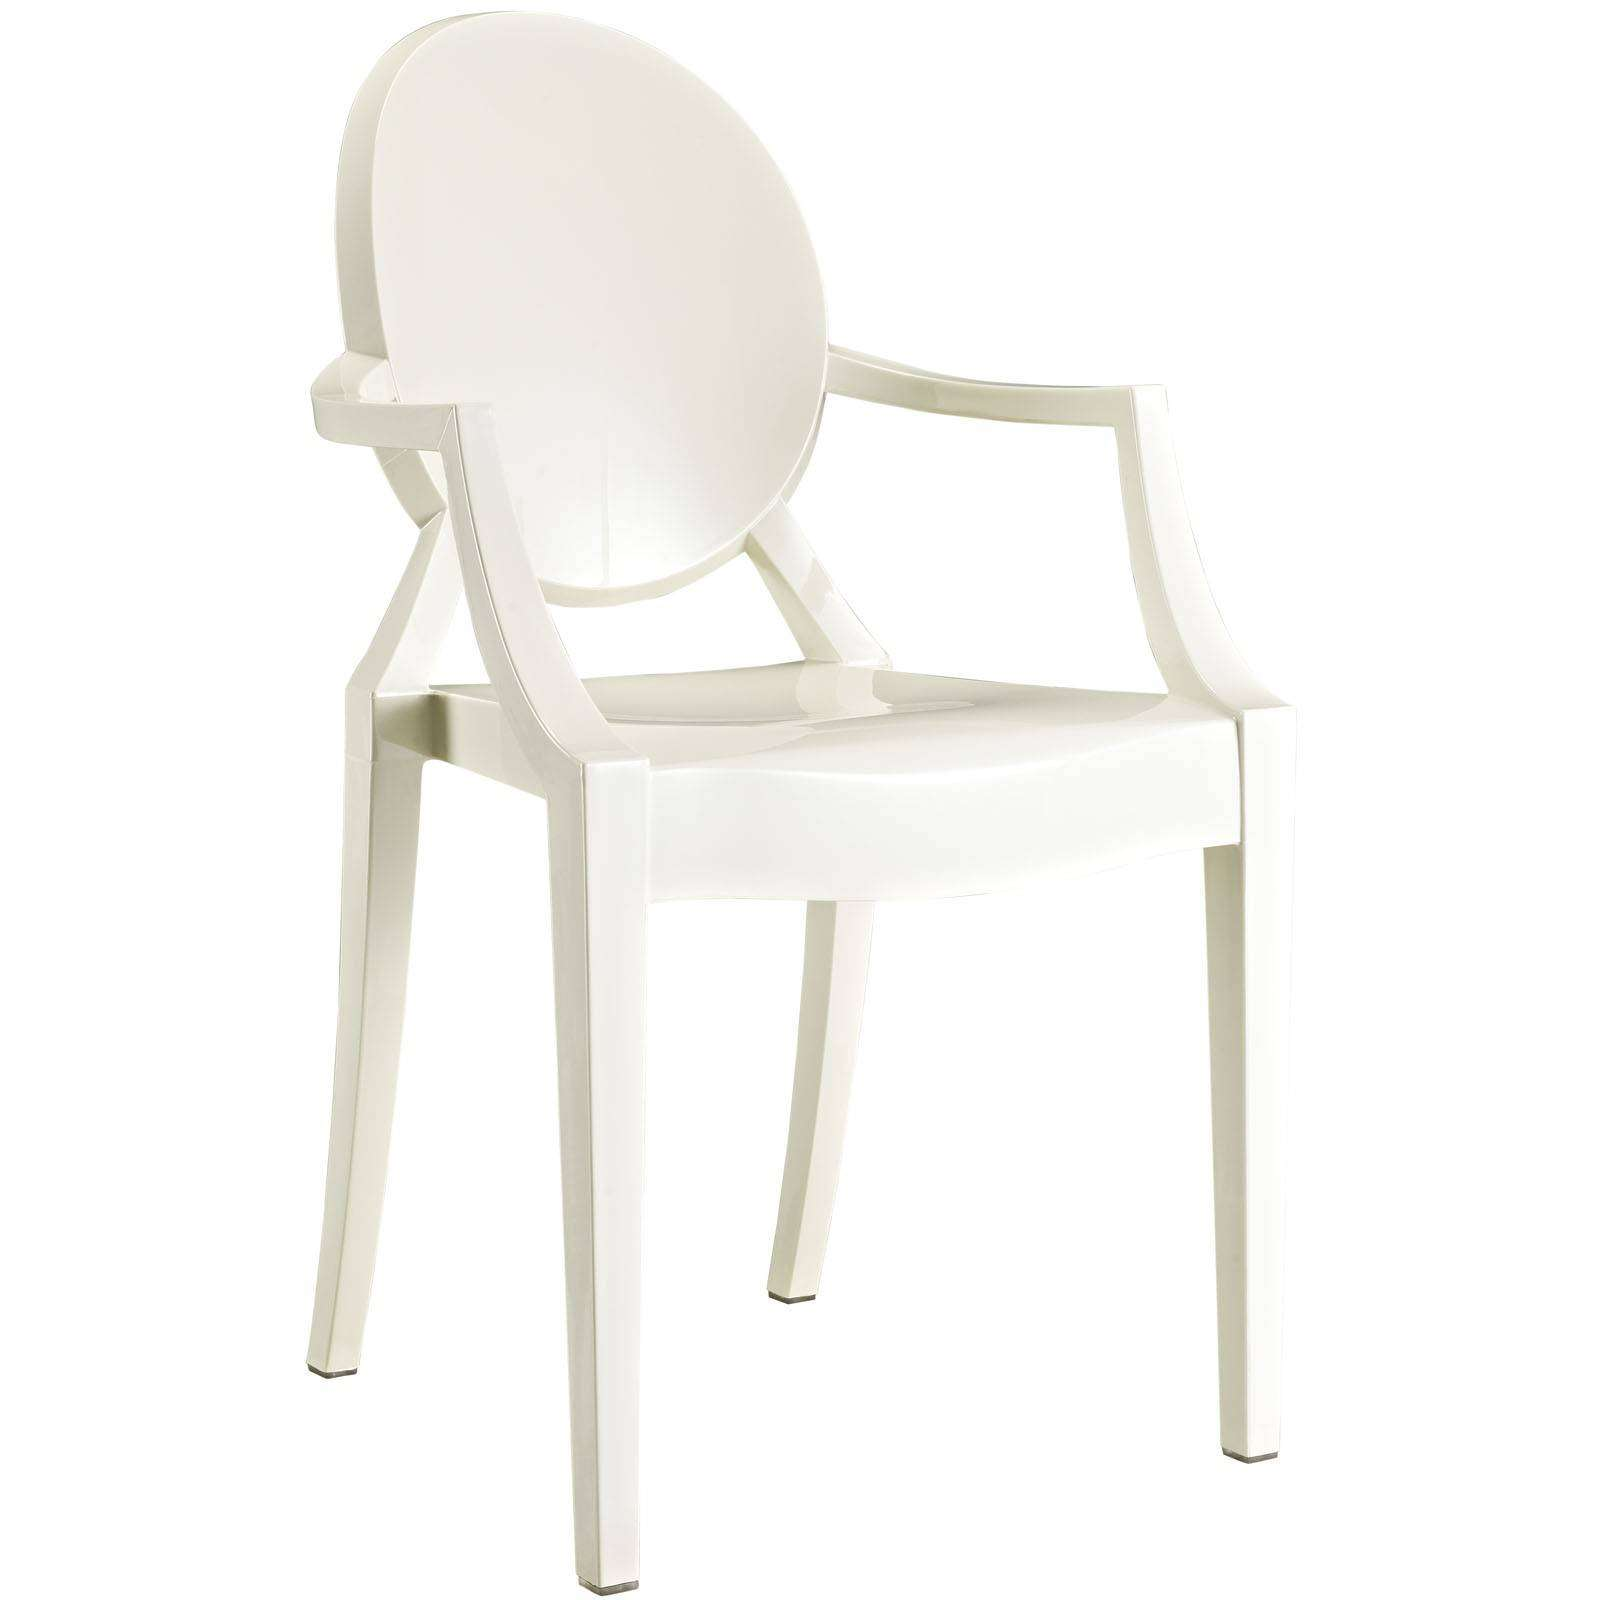 philippe starck ghost chair atlas chairs and tables style louis arm